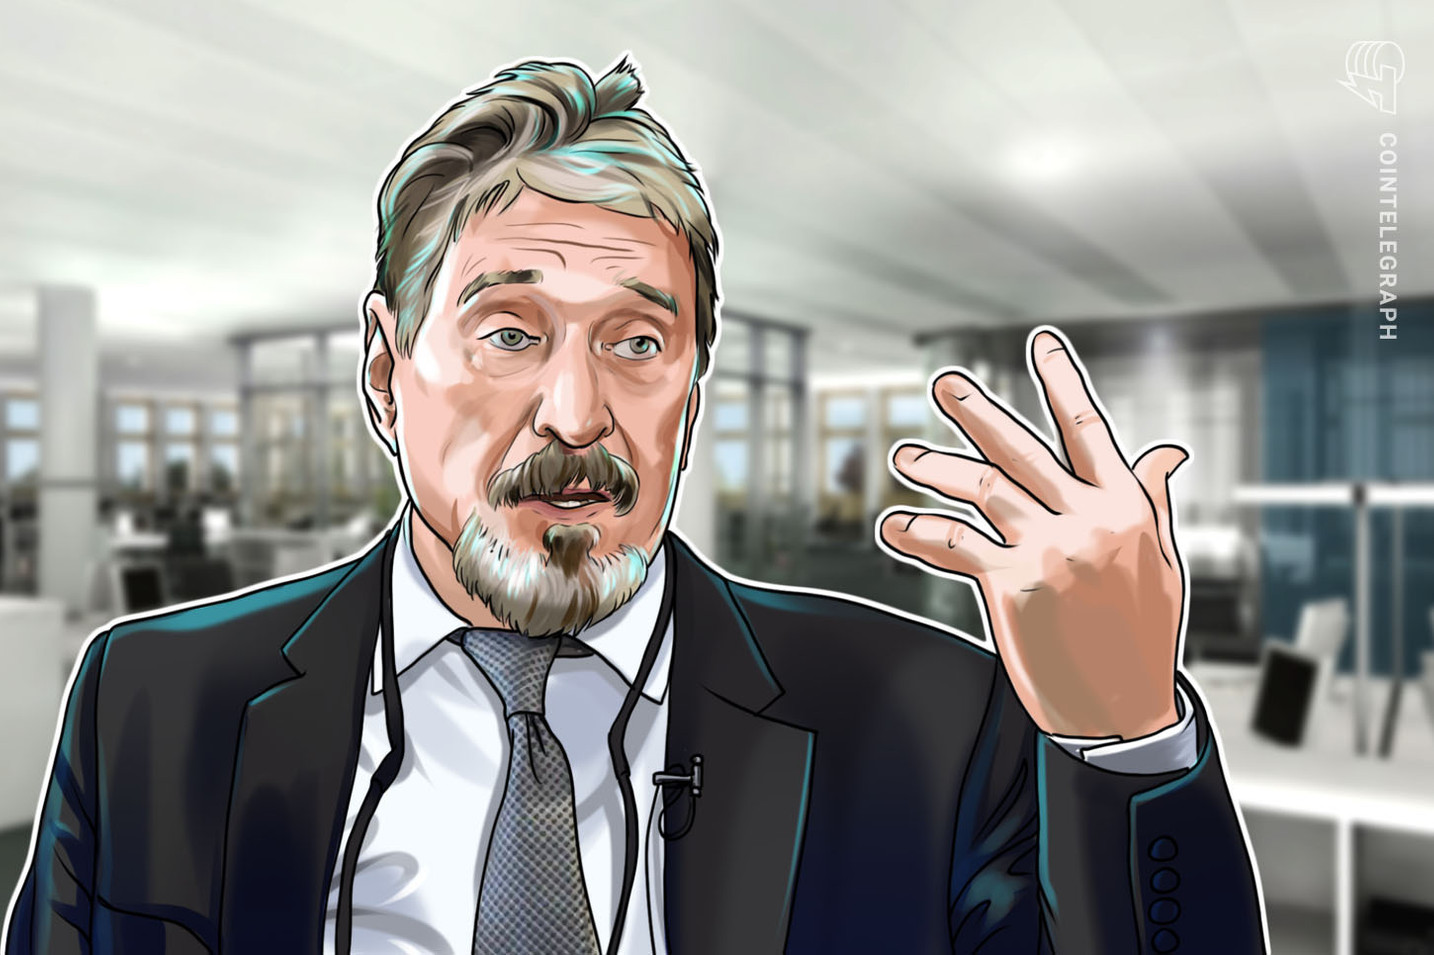 'Worthless Coin' — McAfee Says He Never Believed Bitcoin Would Hit $1M